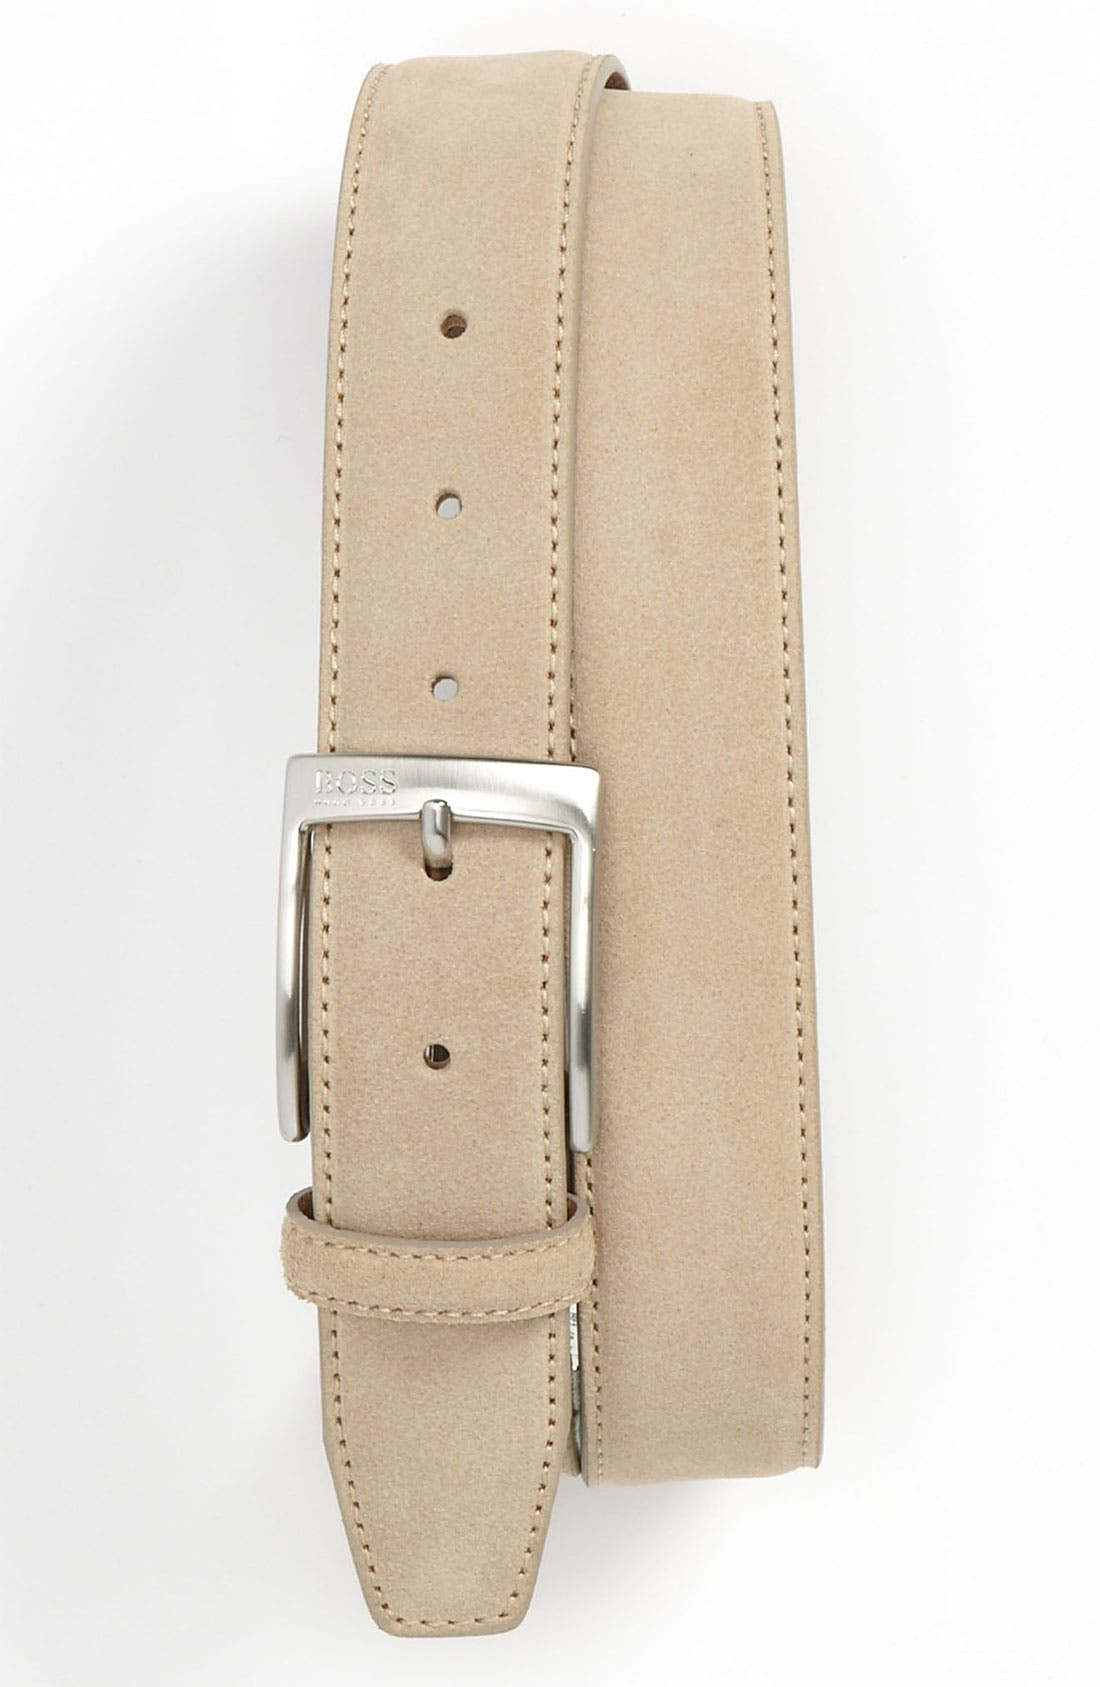 Main Image - BOSS HUGO BOSS 'Sesily' Belt